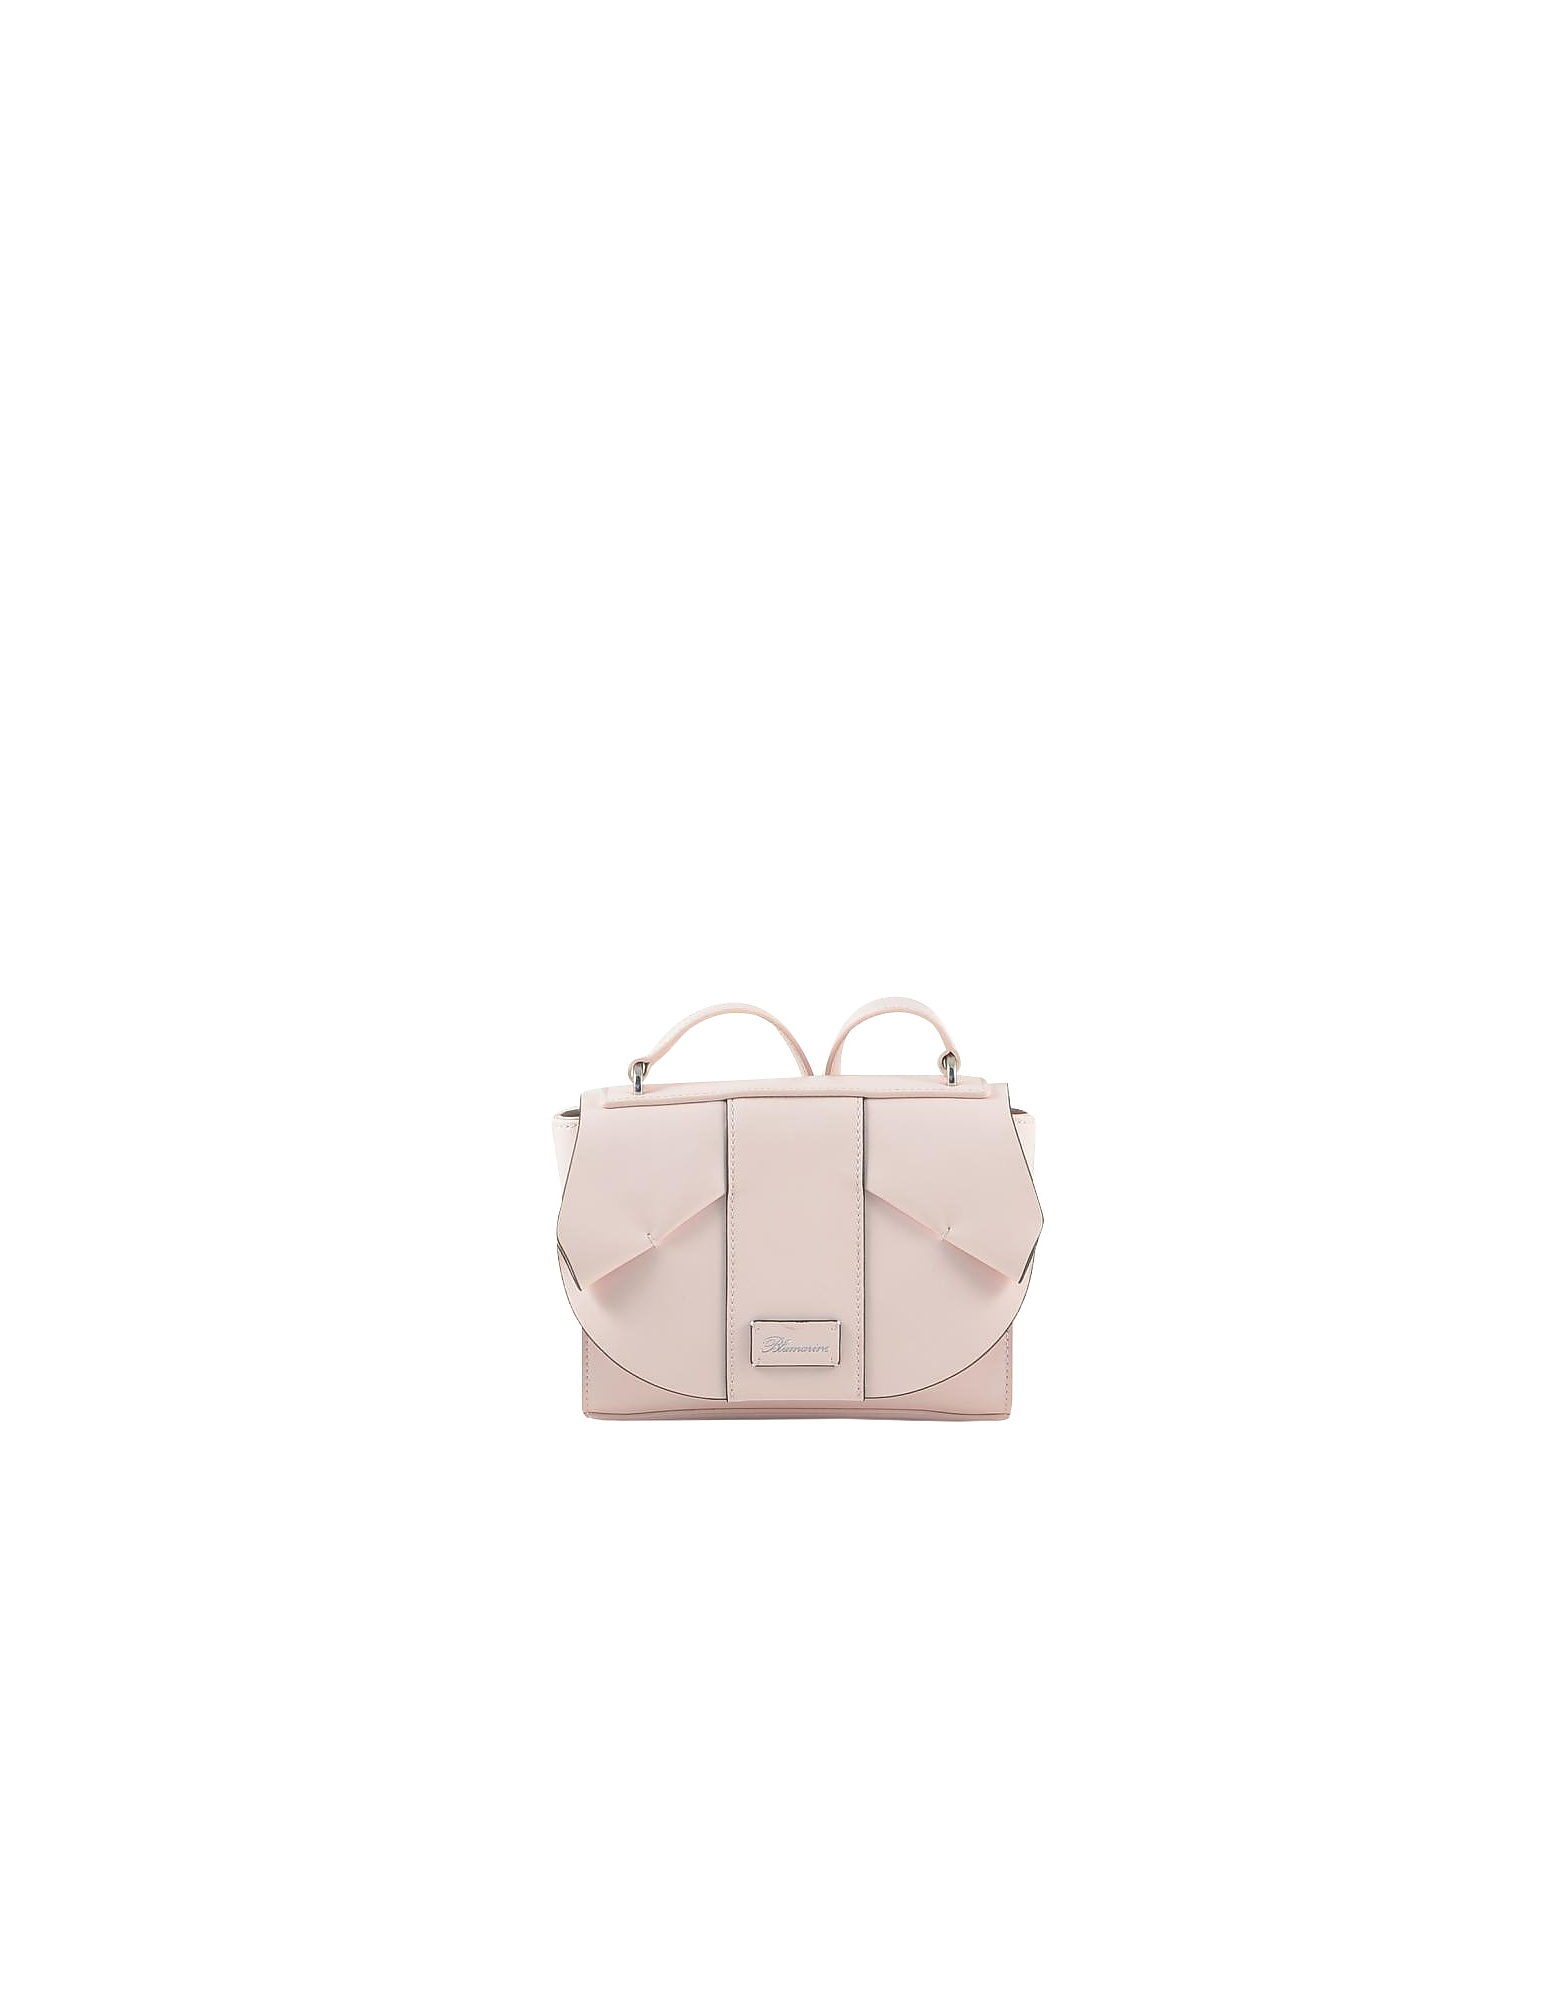 Blumarine Designer Handbags, Olivia Small Pink Leather Crossbody Bag